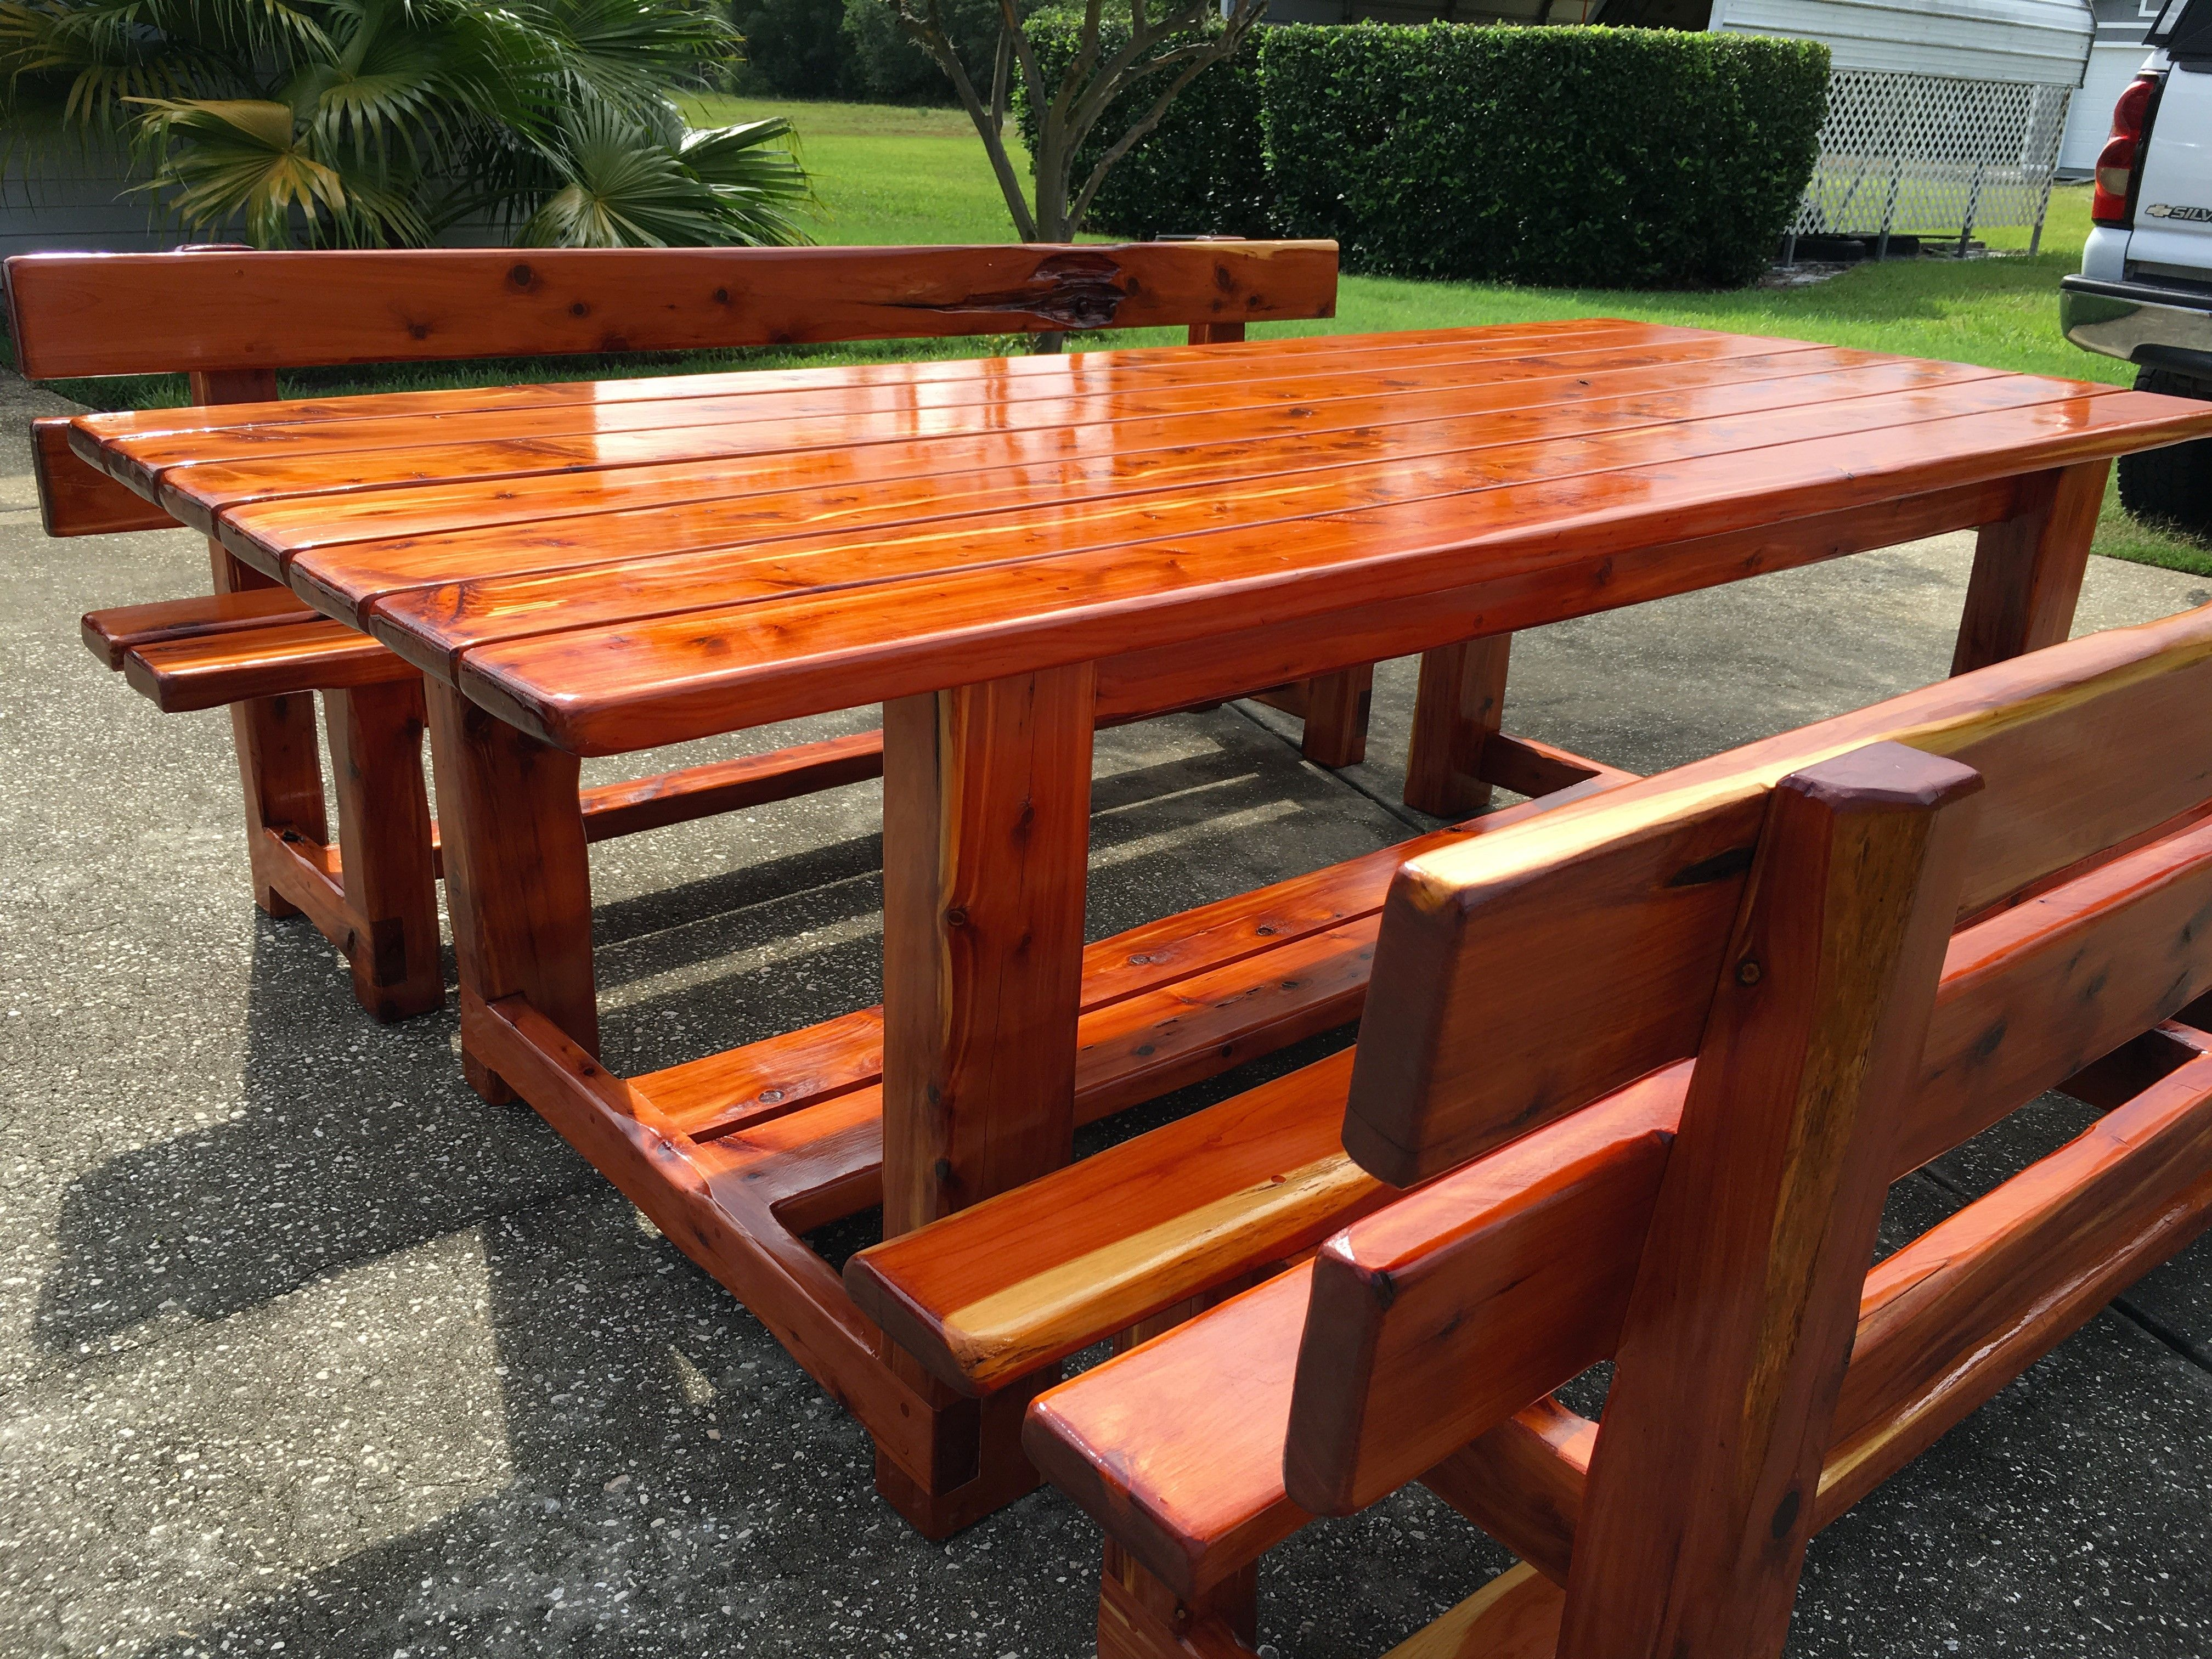 Eastern Cedar Table And Benches Finished With Clear Spar Varnish No Stain Www Facebook Com Jbprecisioncarpentry Cedar Table Outdoor Decor Outdoor Tables